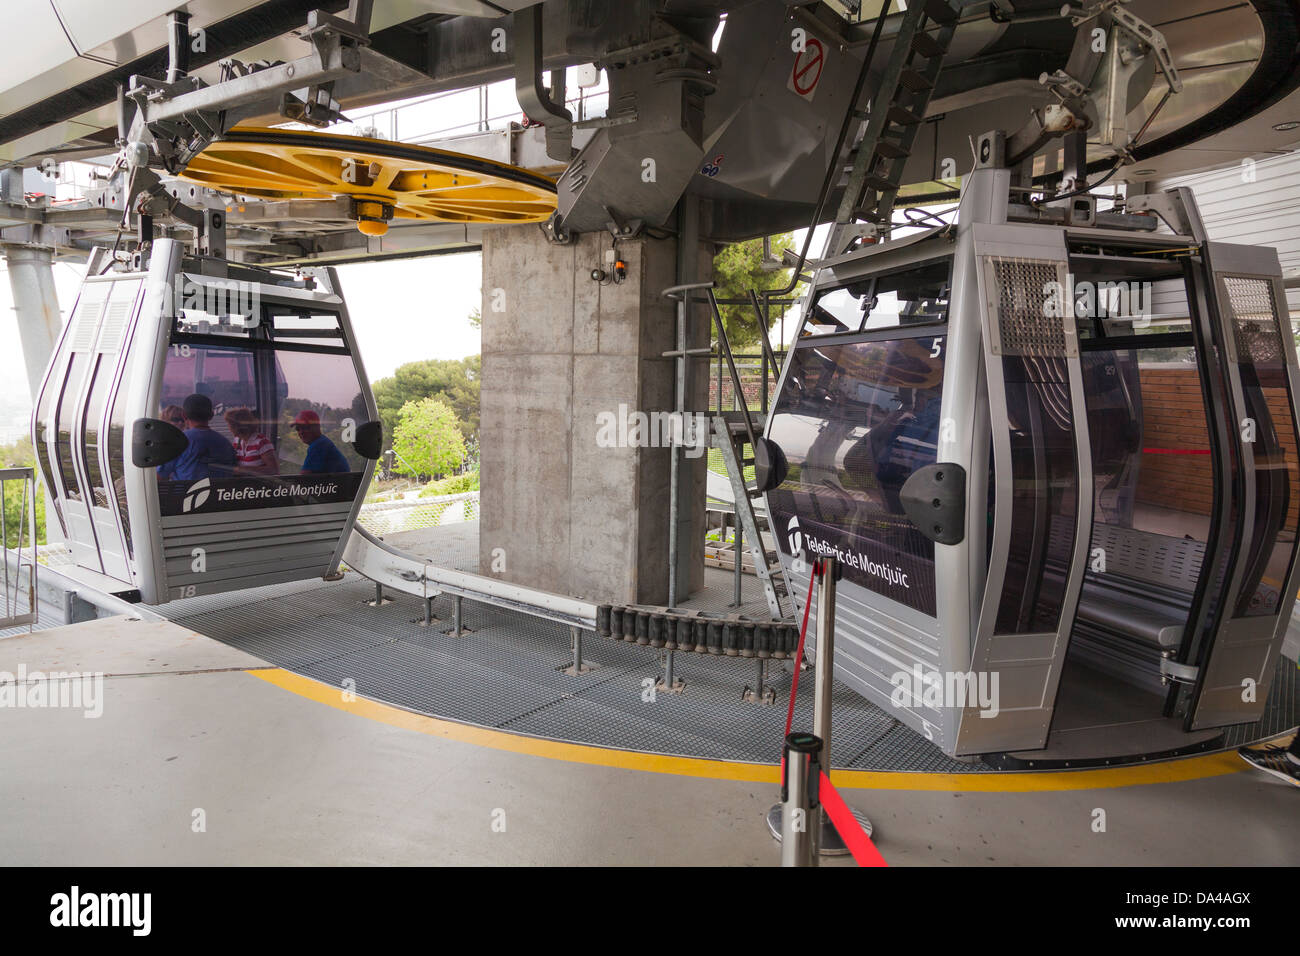 The Montjuic cable car disembarkation at Montjuïc castle terminal Stock Photo